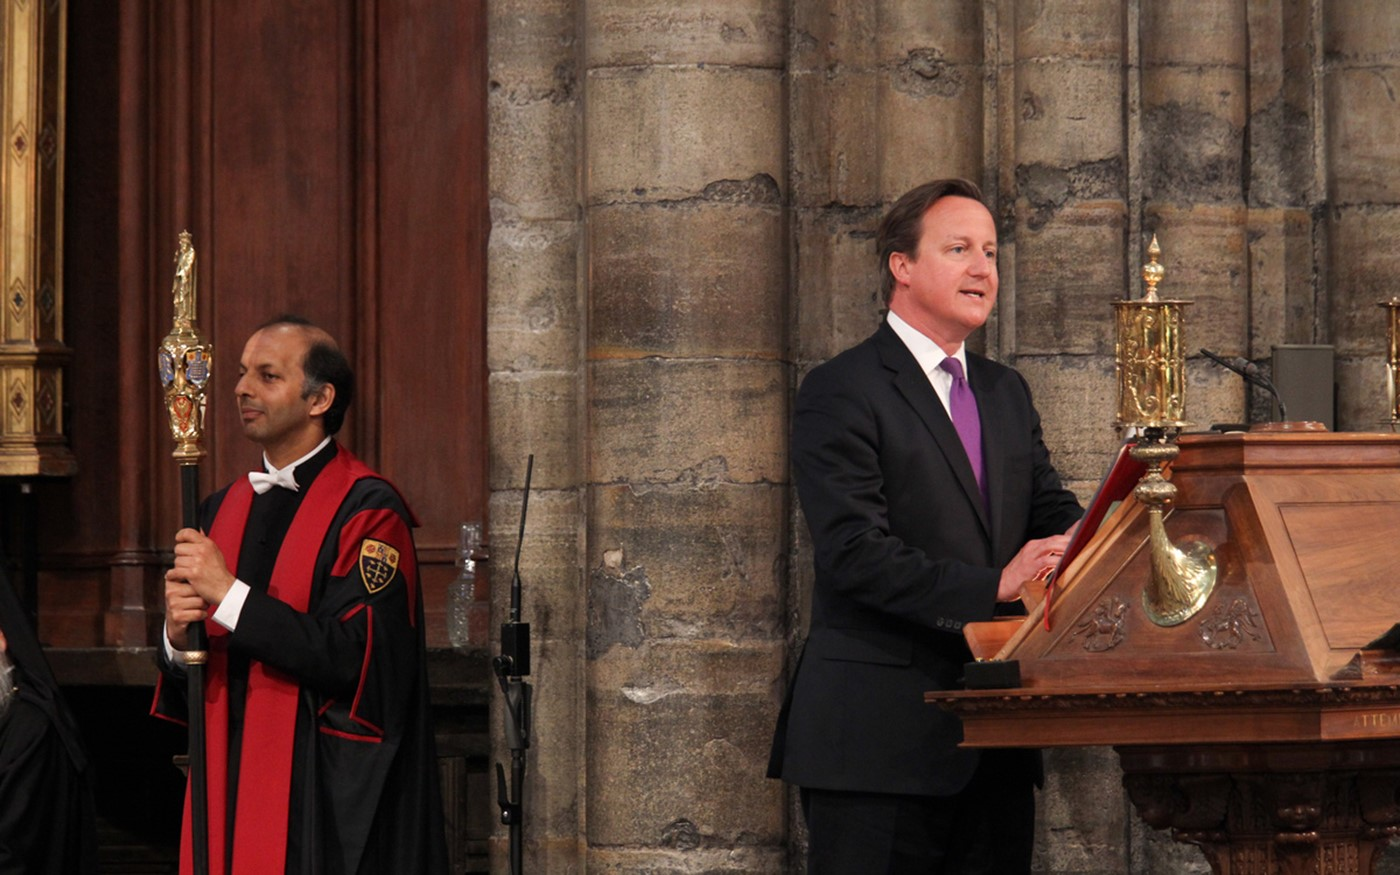 The Prime Minister, the Right Honourable David Cameron MP, read 1 Kings 1: 32-40